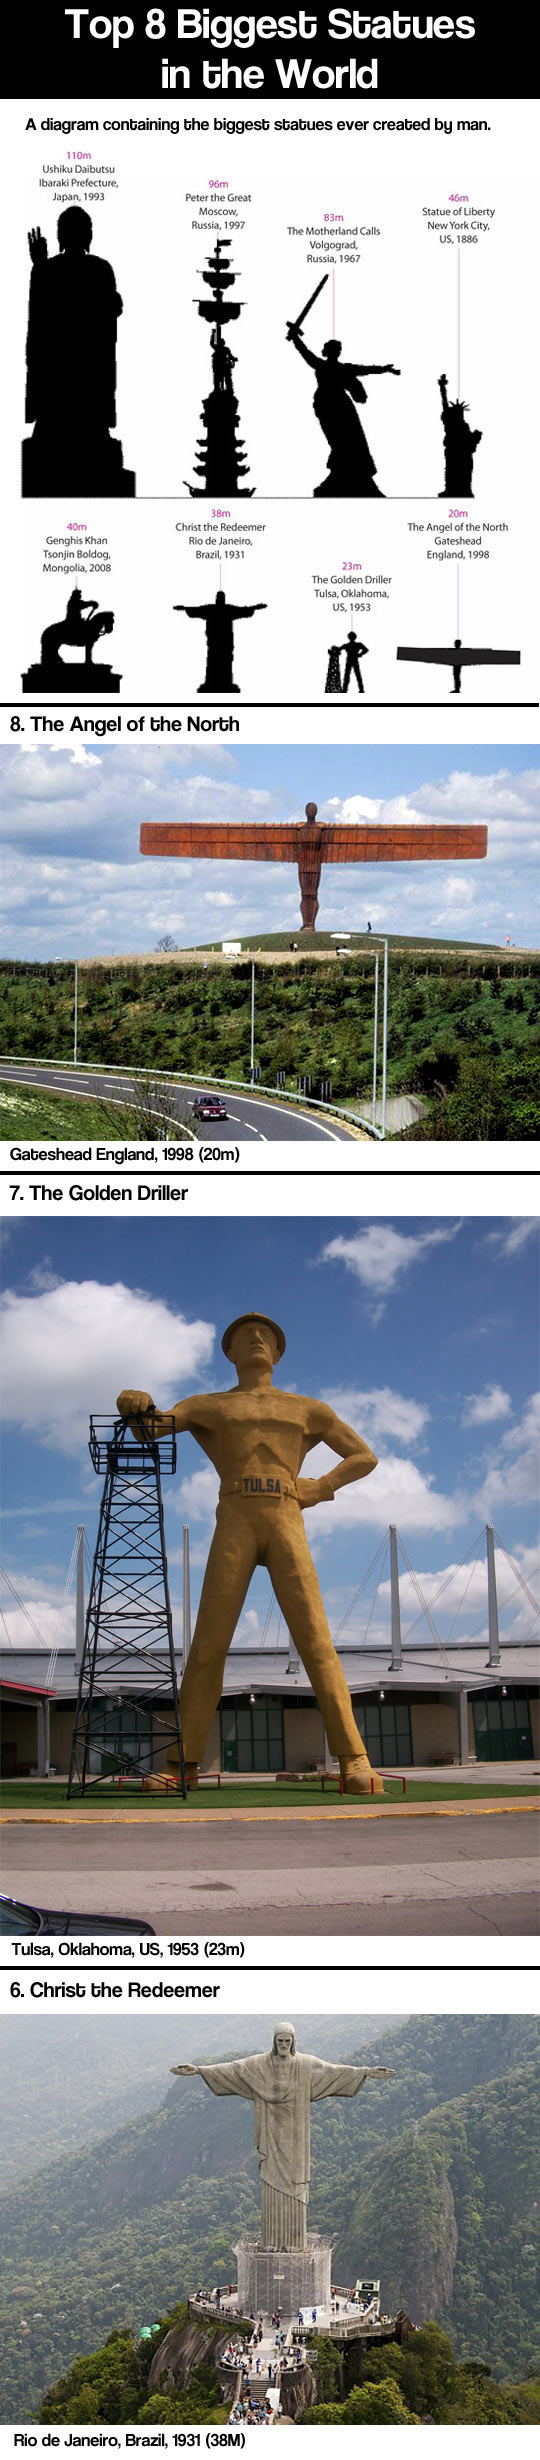 funny-biggest-statues-world-created-man